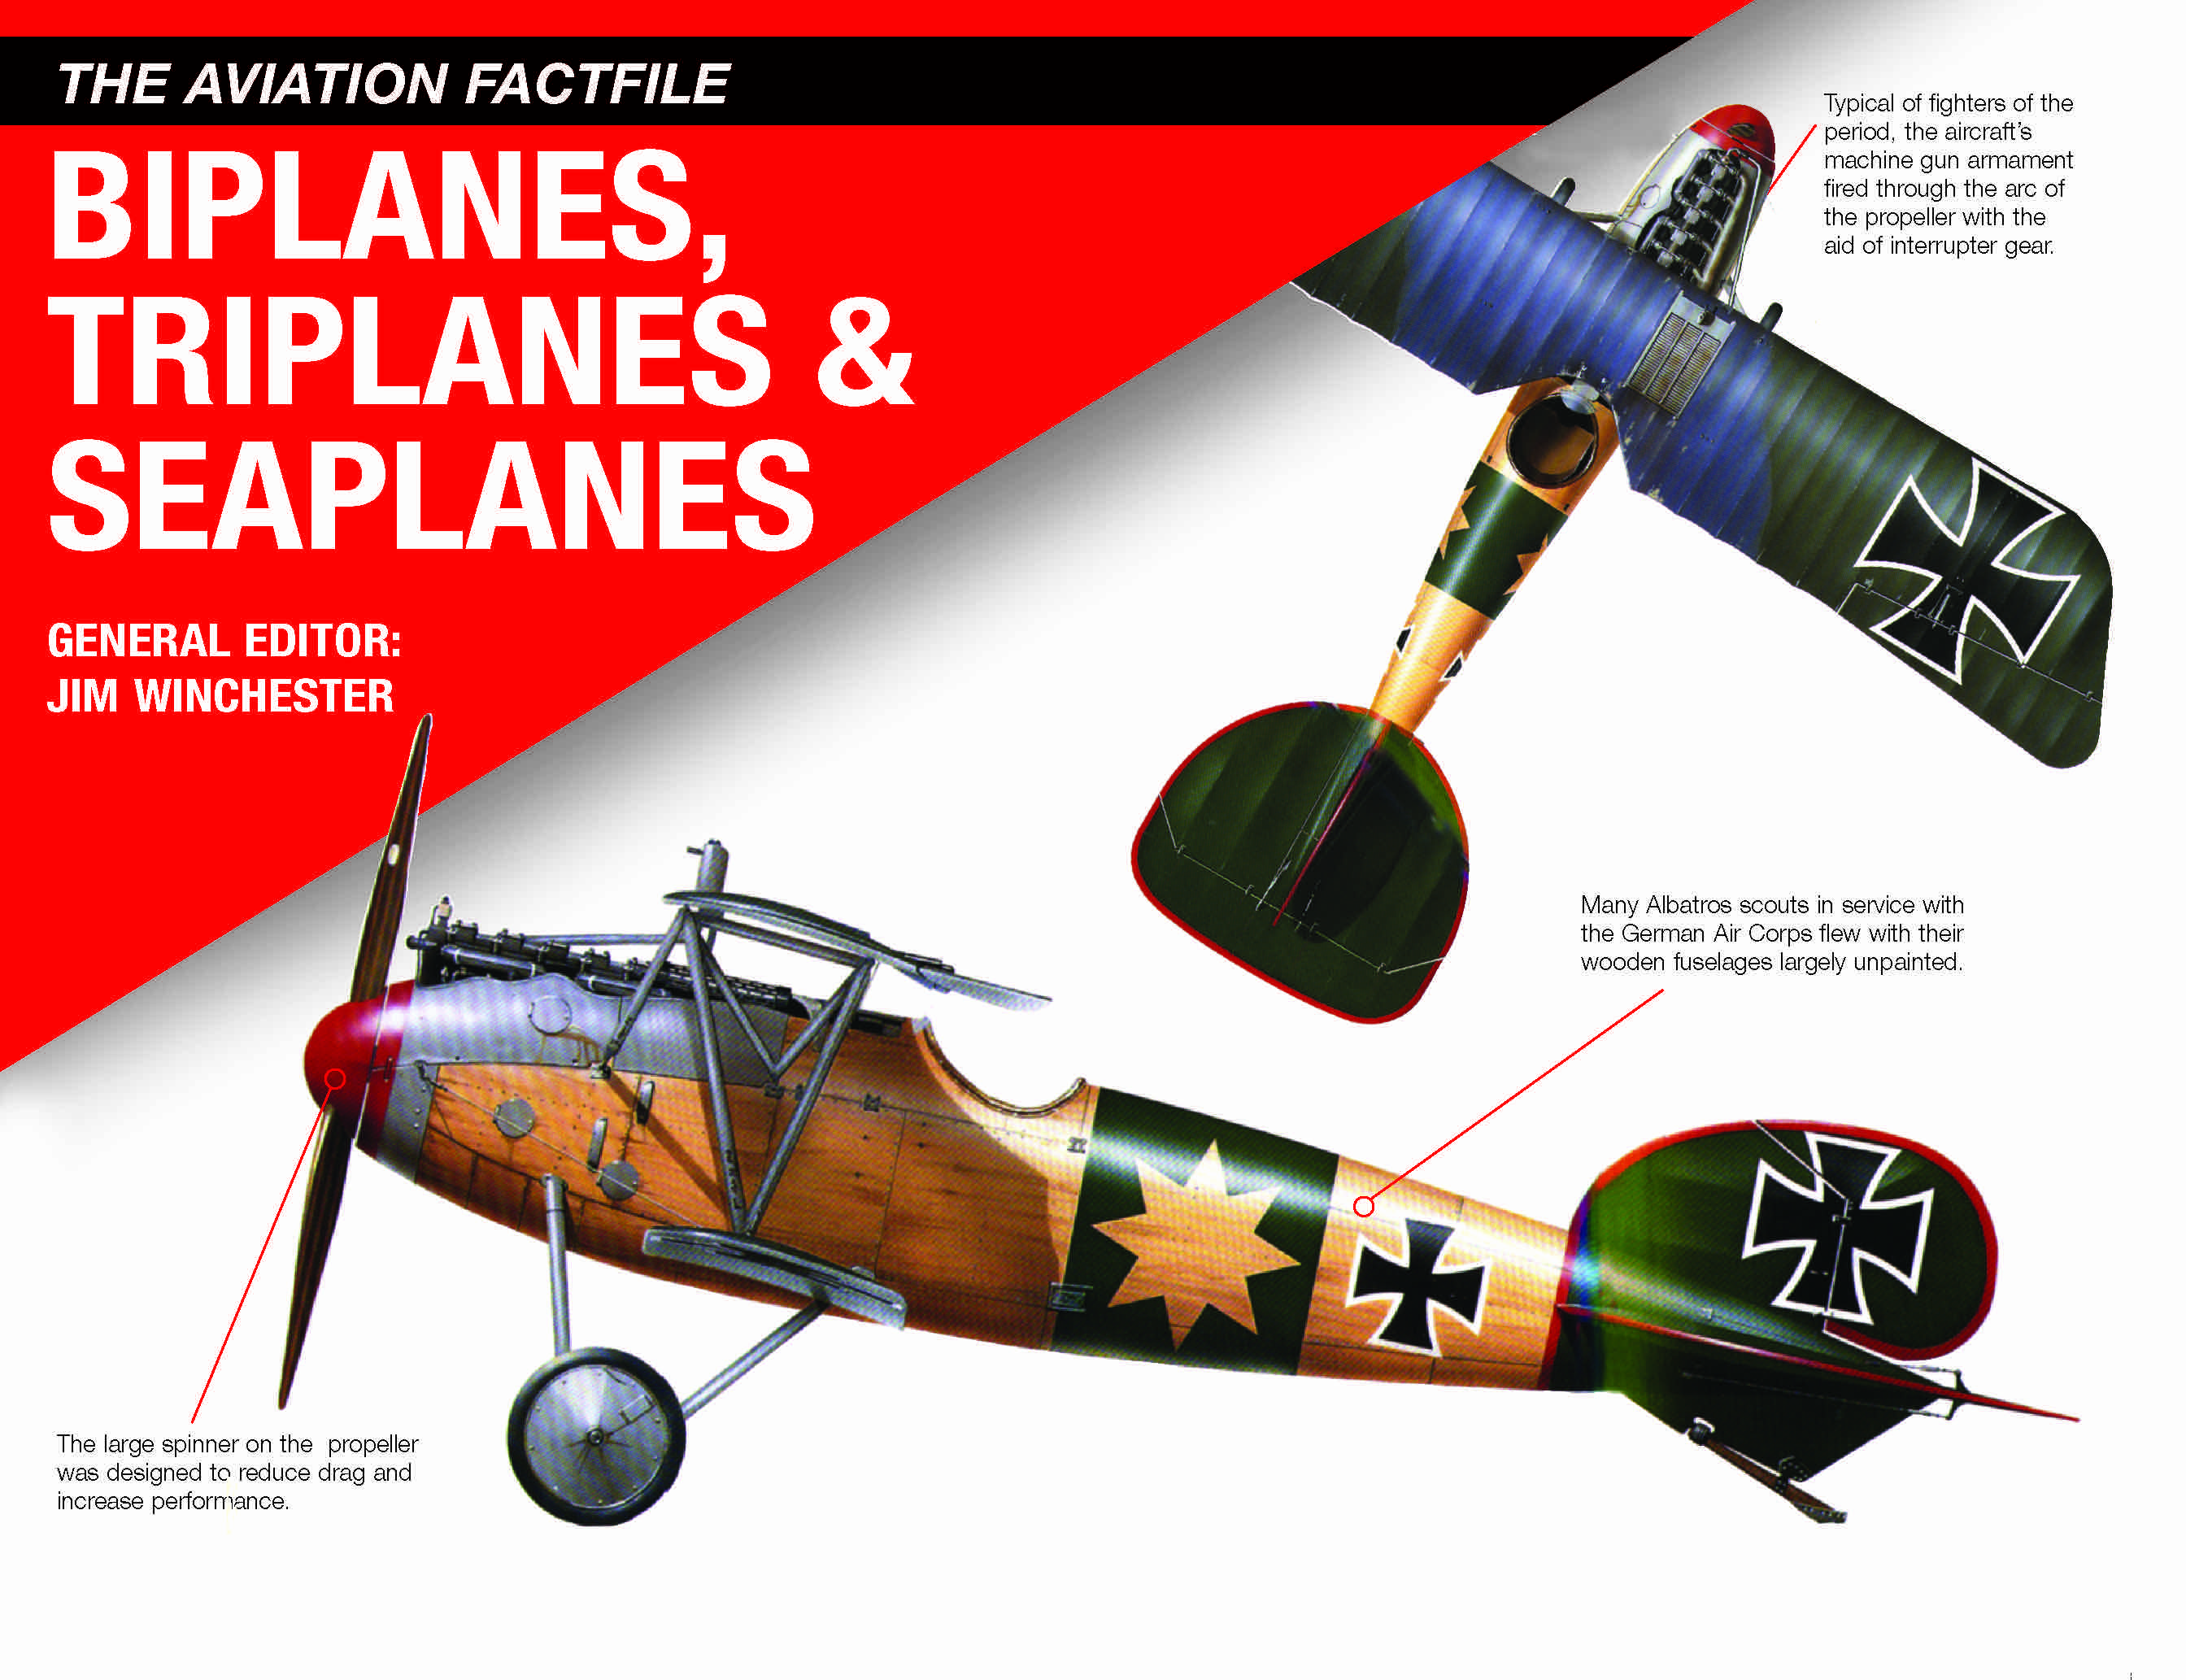 Biplanes, Triplanes and Seaplanes: The Aviation Factfile